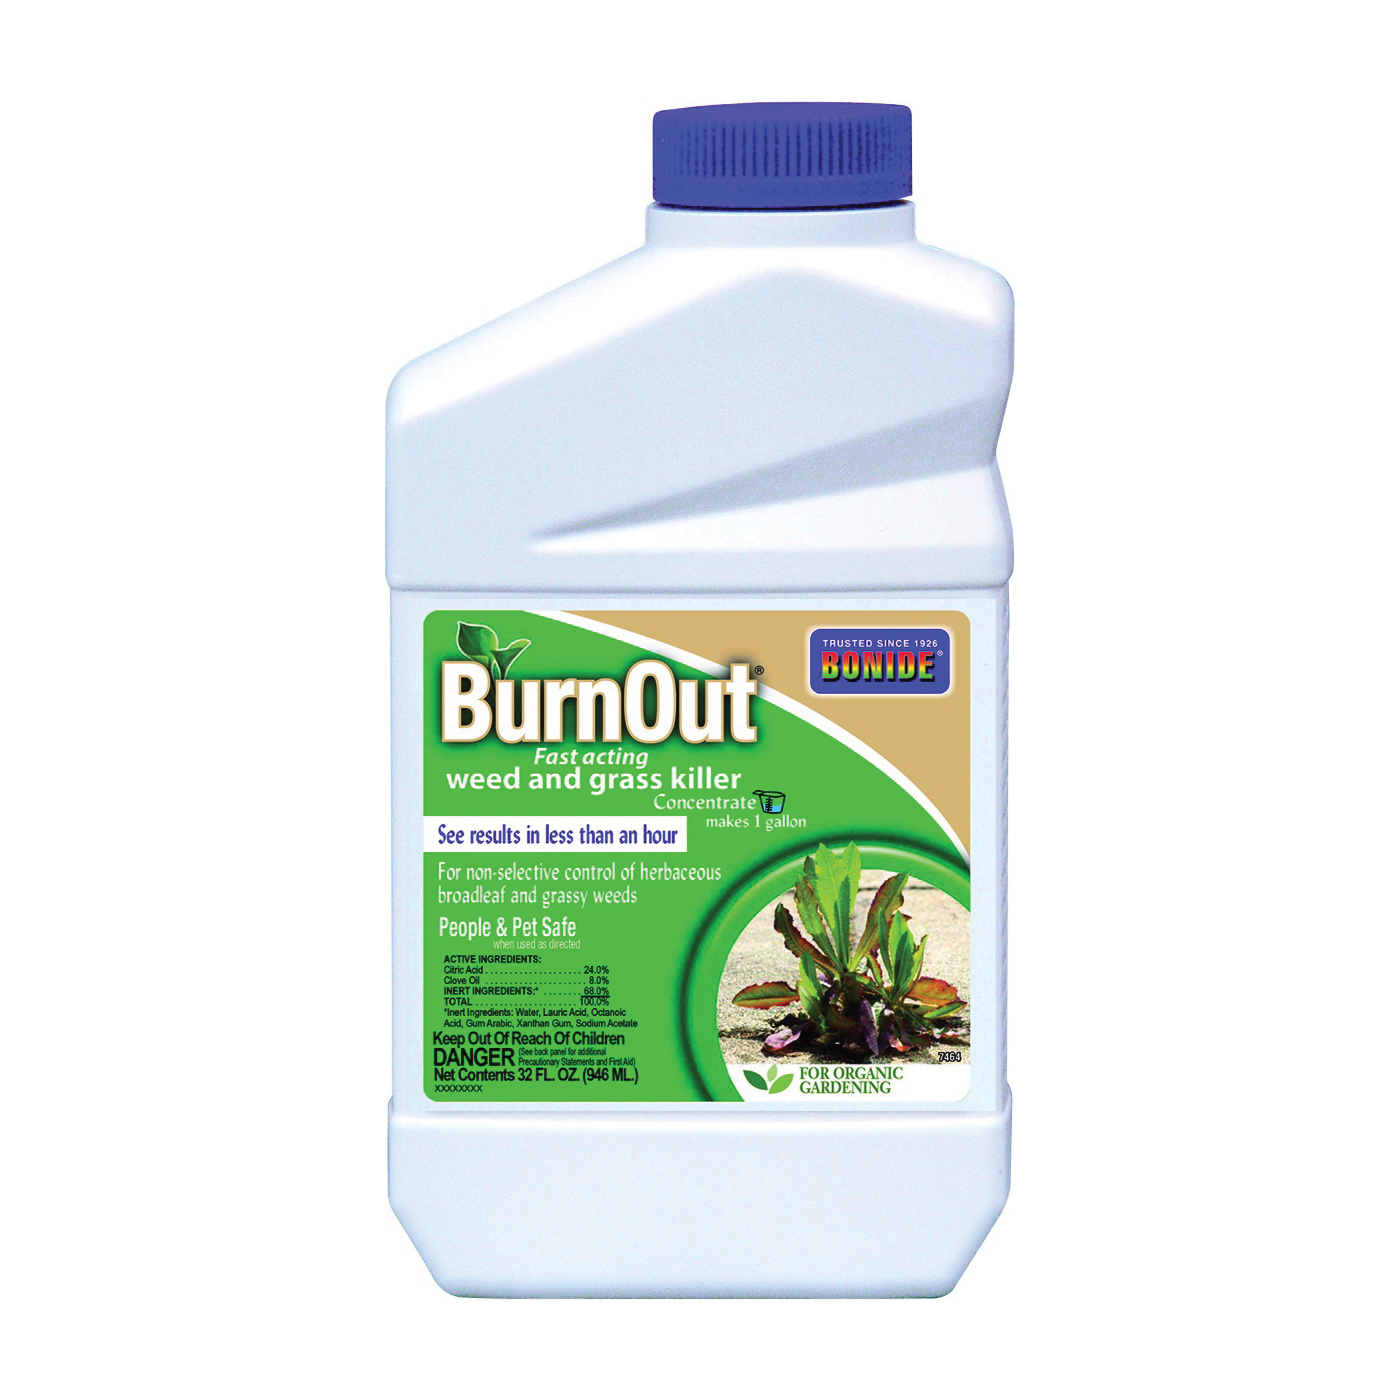 Picture of Bonide 7464 Weed and Grass Killer, Liquid, Light Yellow/White, 6 qt Package